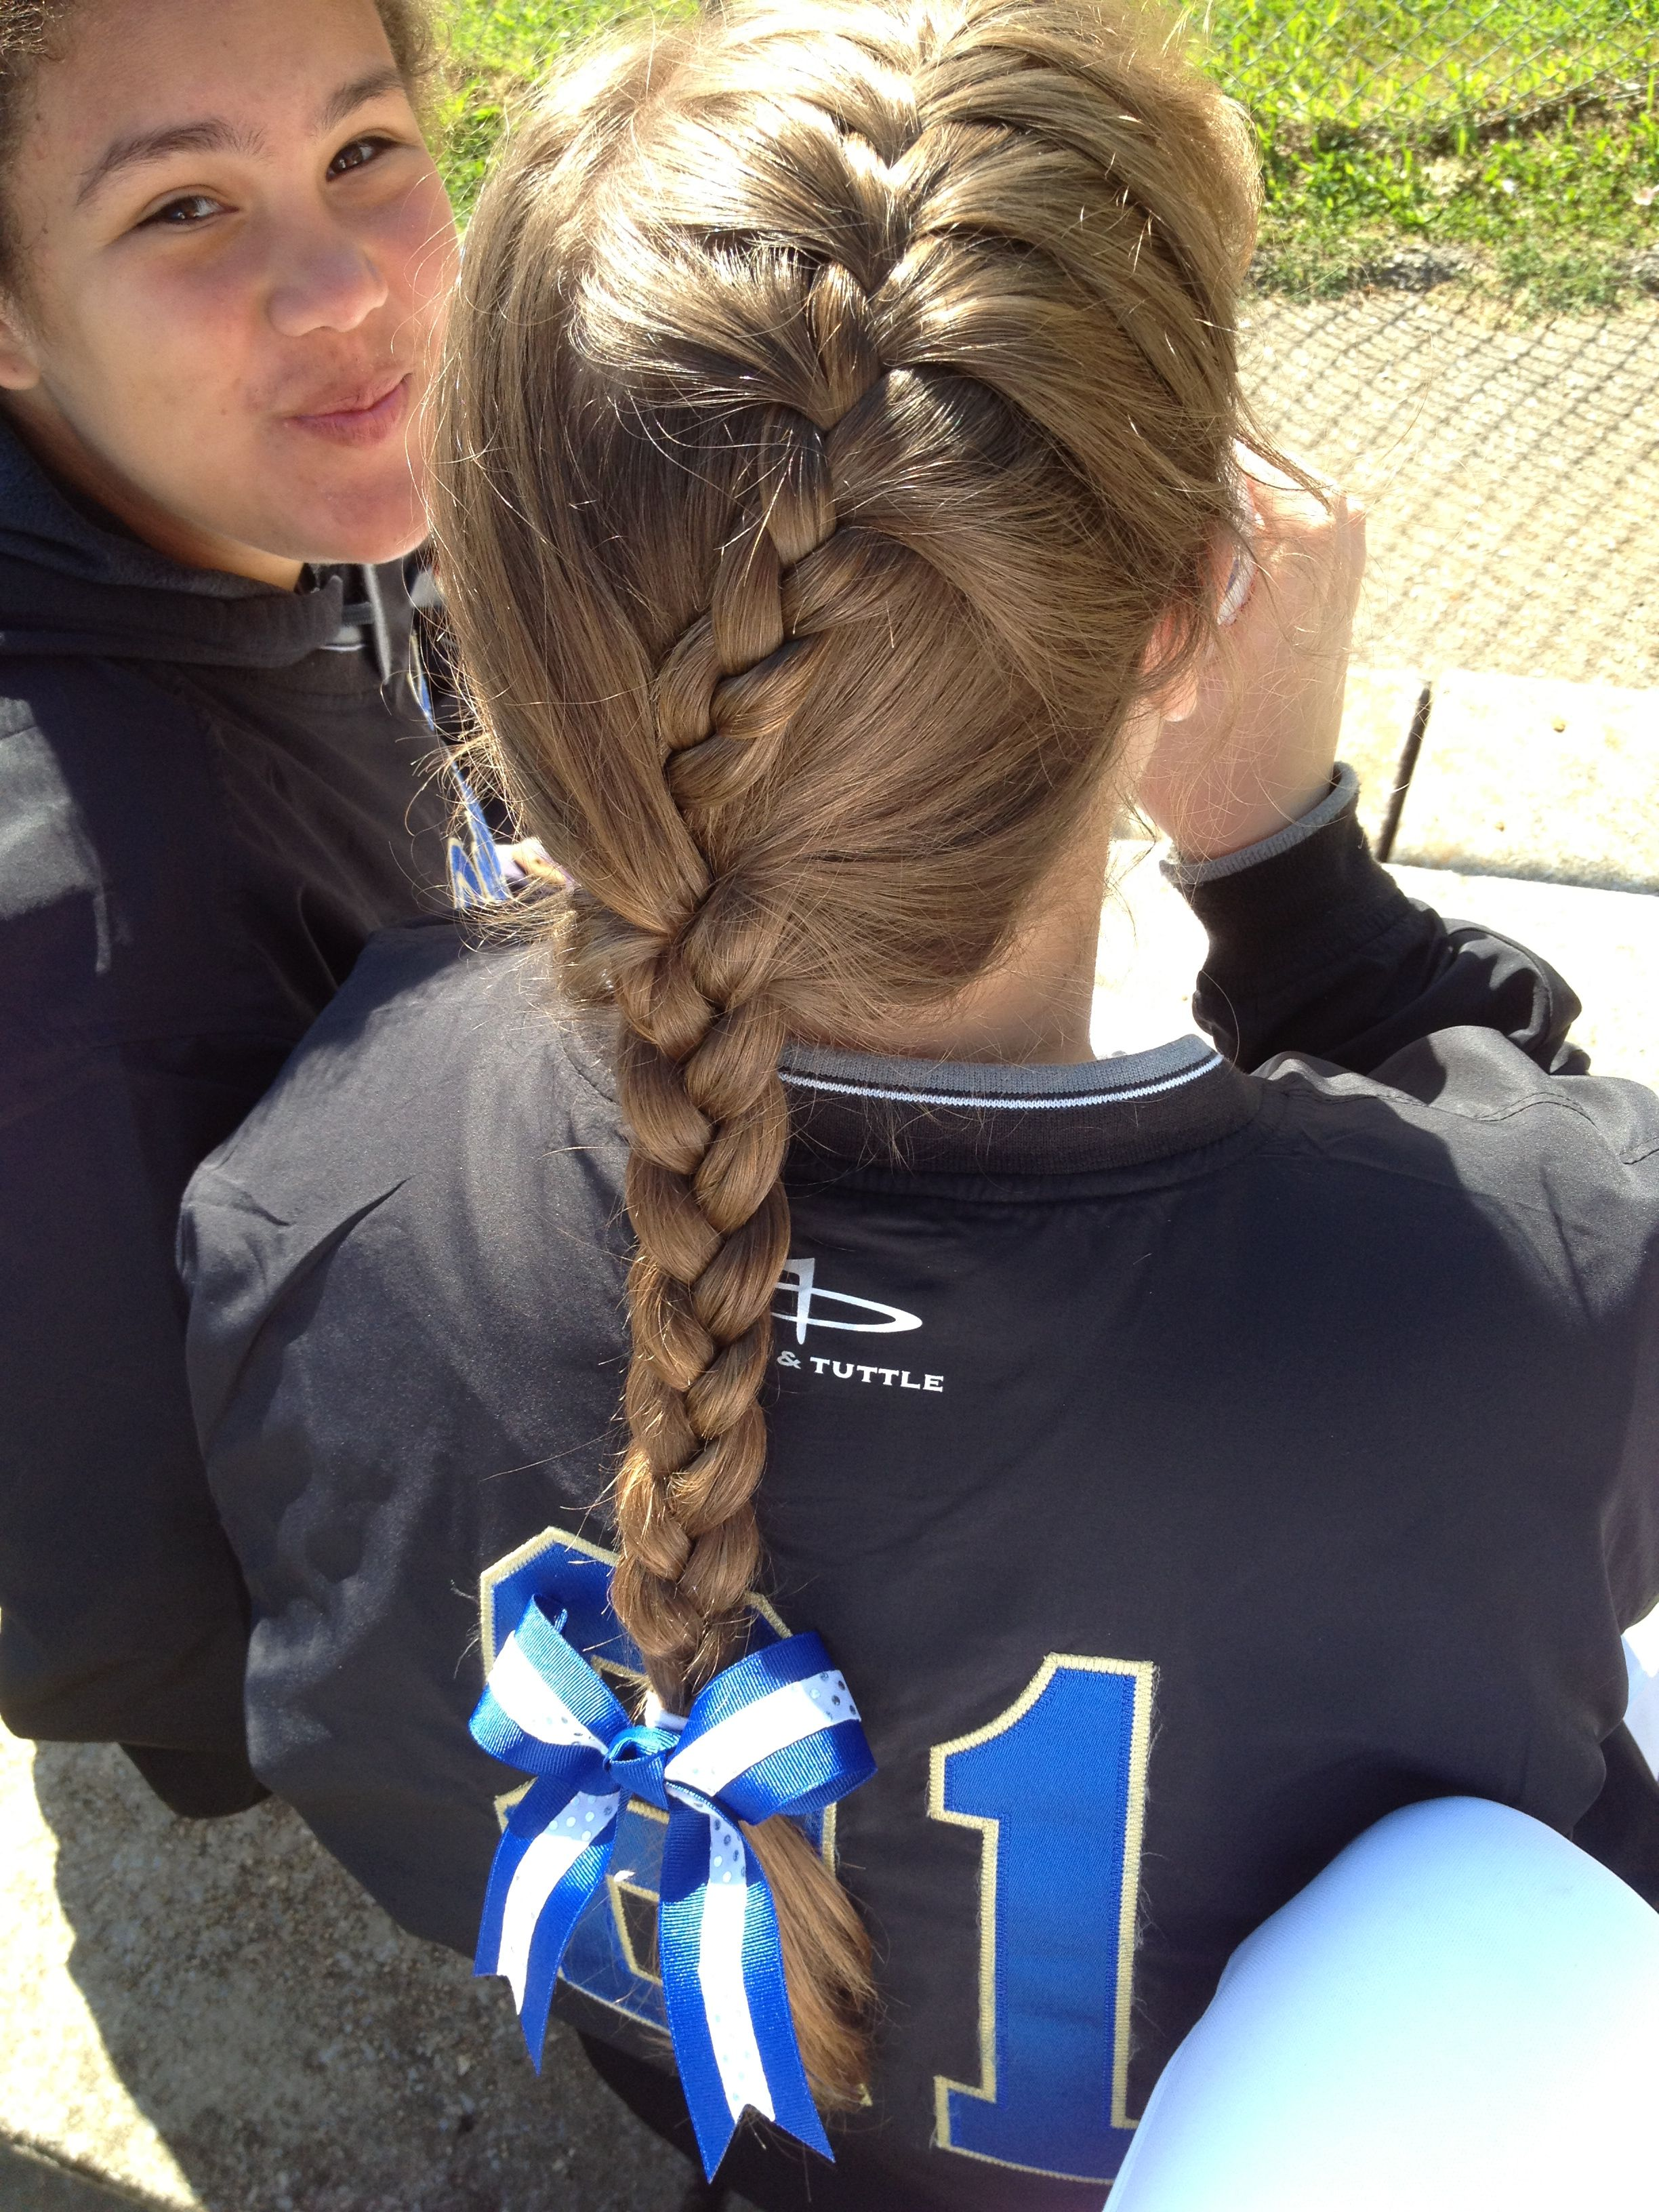 Pin By Francesca Figueroa On Red Dirt Bruises Are In Fashion Softball Hairstyles Volleyball Hairstyles Sporty Hairstyles